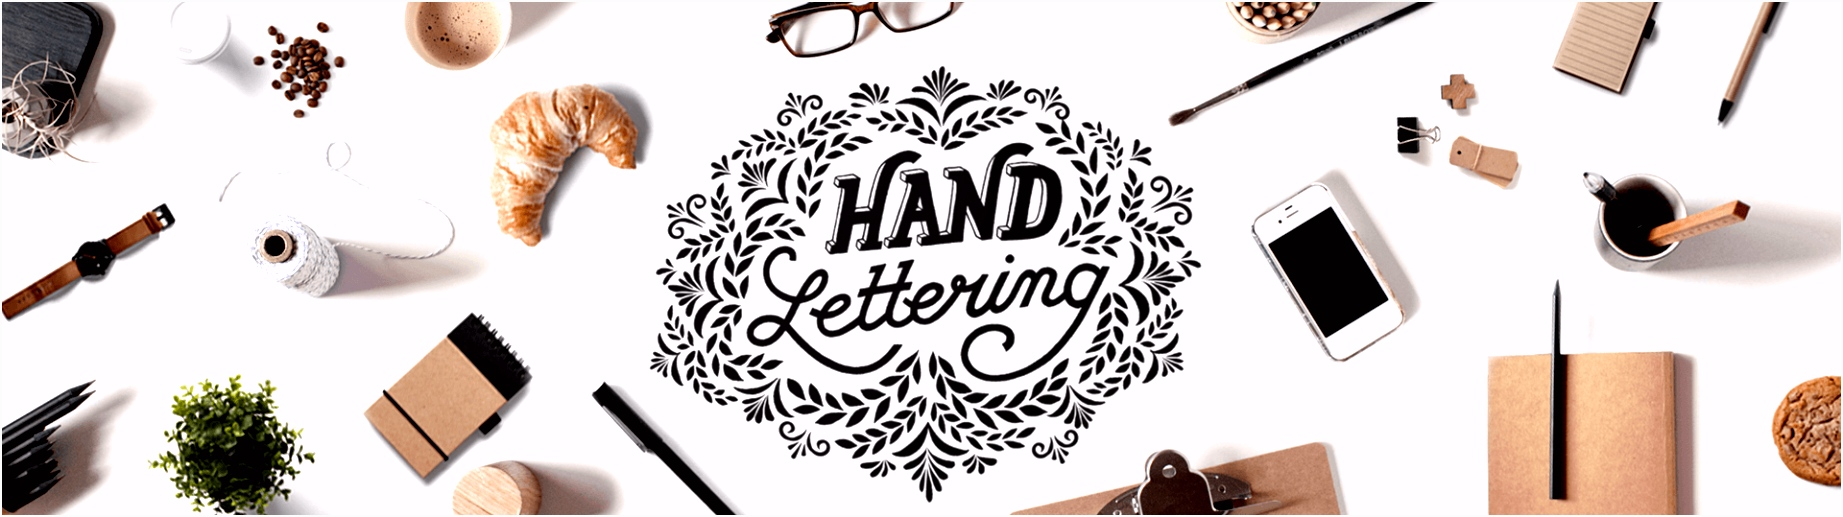 Hand lettering design 40 stunning examples to inspire you—and tips